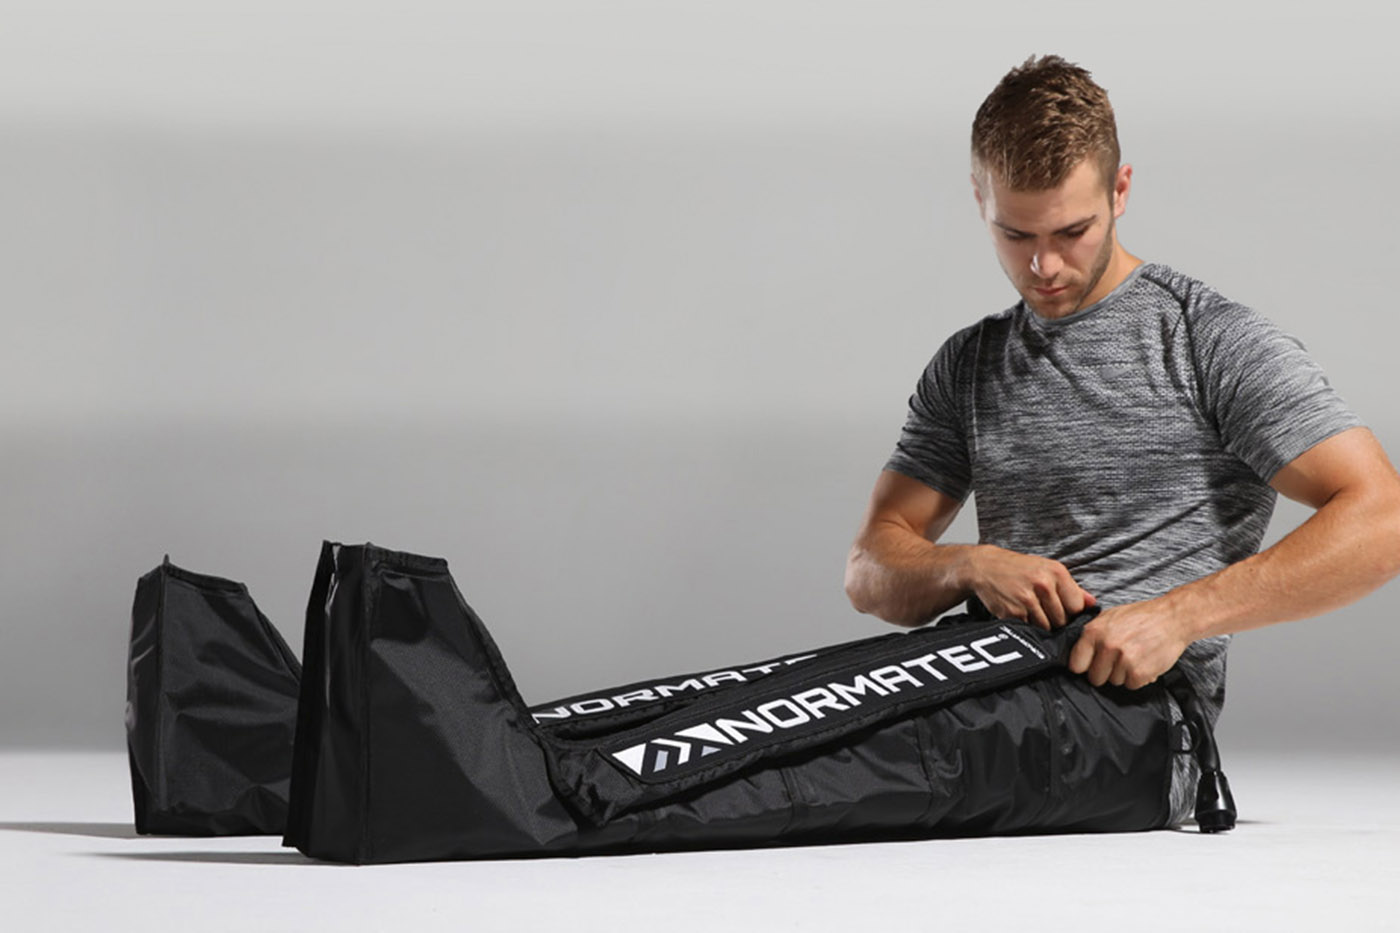 NORMATEC compression - Come and relax in the Recovery Room's plush, leather recliner chairs and experience the power of the NormaTec Recovery System. Give yourself the same competitive edge as the world's top athletes.